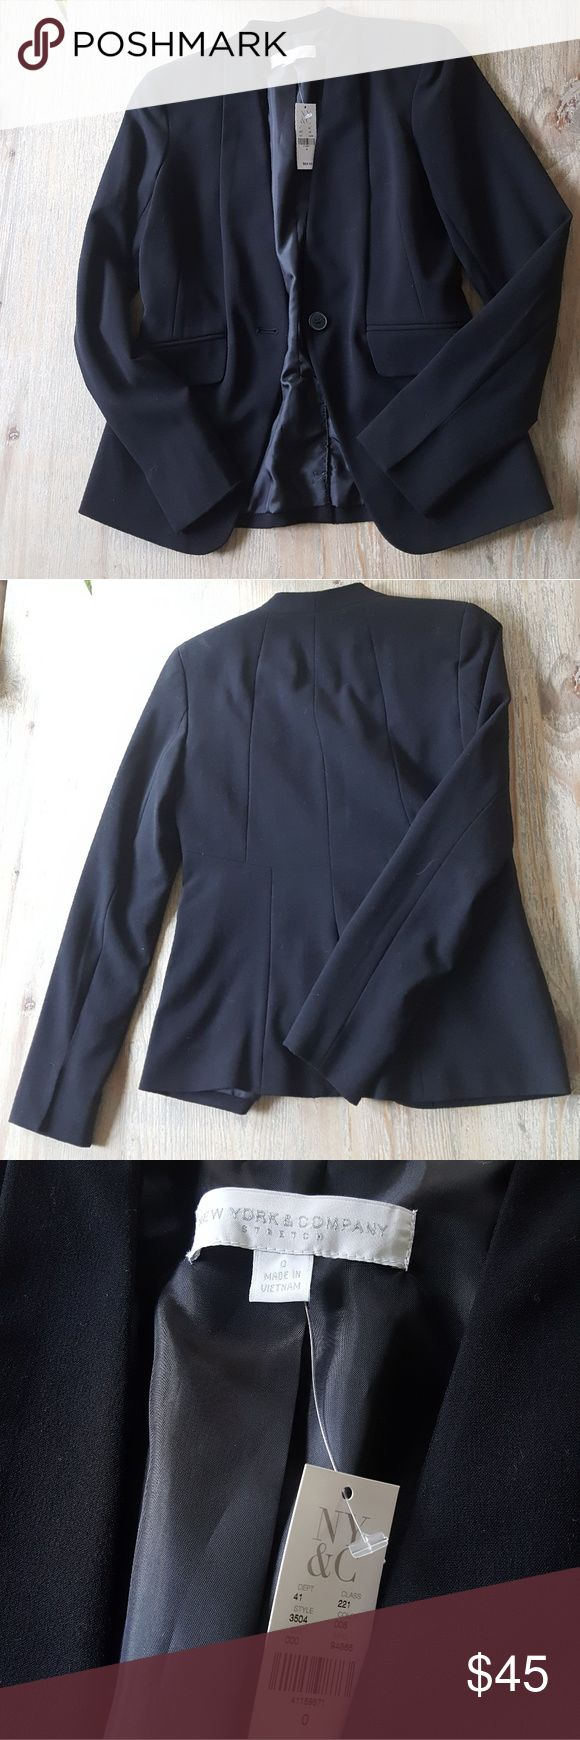 NWT NY&Co Blazer Purchased a while ago and never ended up wearing since I ended up just wearing the blazers I have with matching skirts. Very comfy and in excellent condition!  Tagged LOFT, The Limited, Ann Taylor, J Crew, Banana Republic, White House Black Market New York & Company Jackets & Coats Blazers